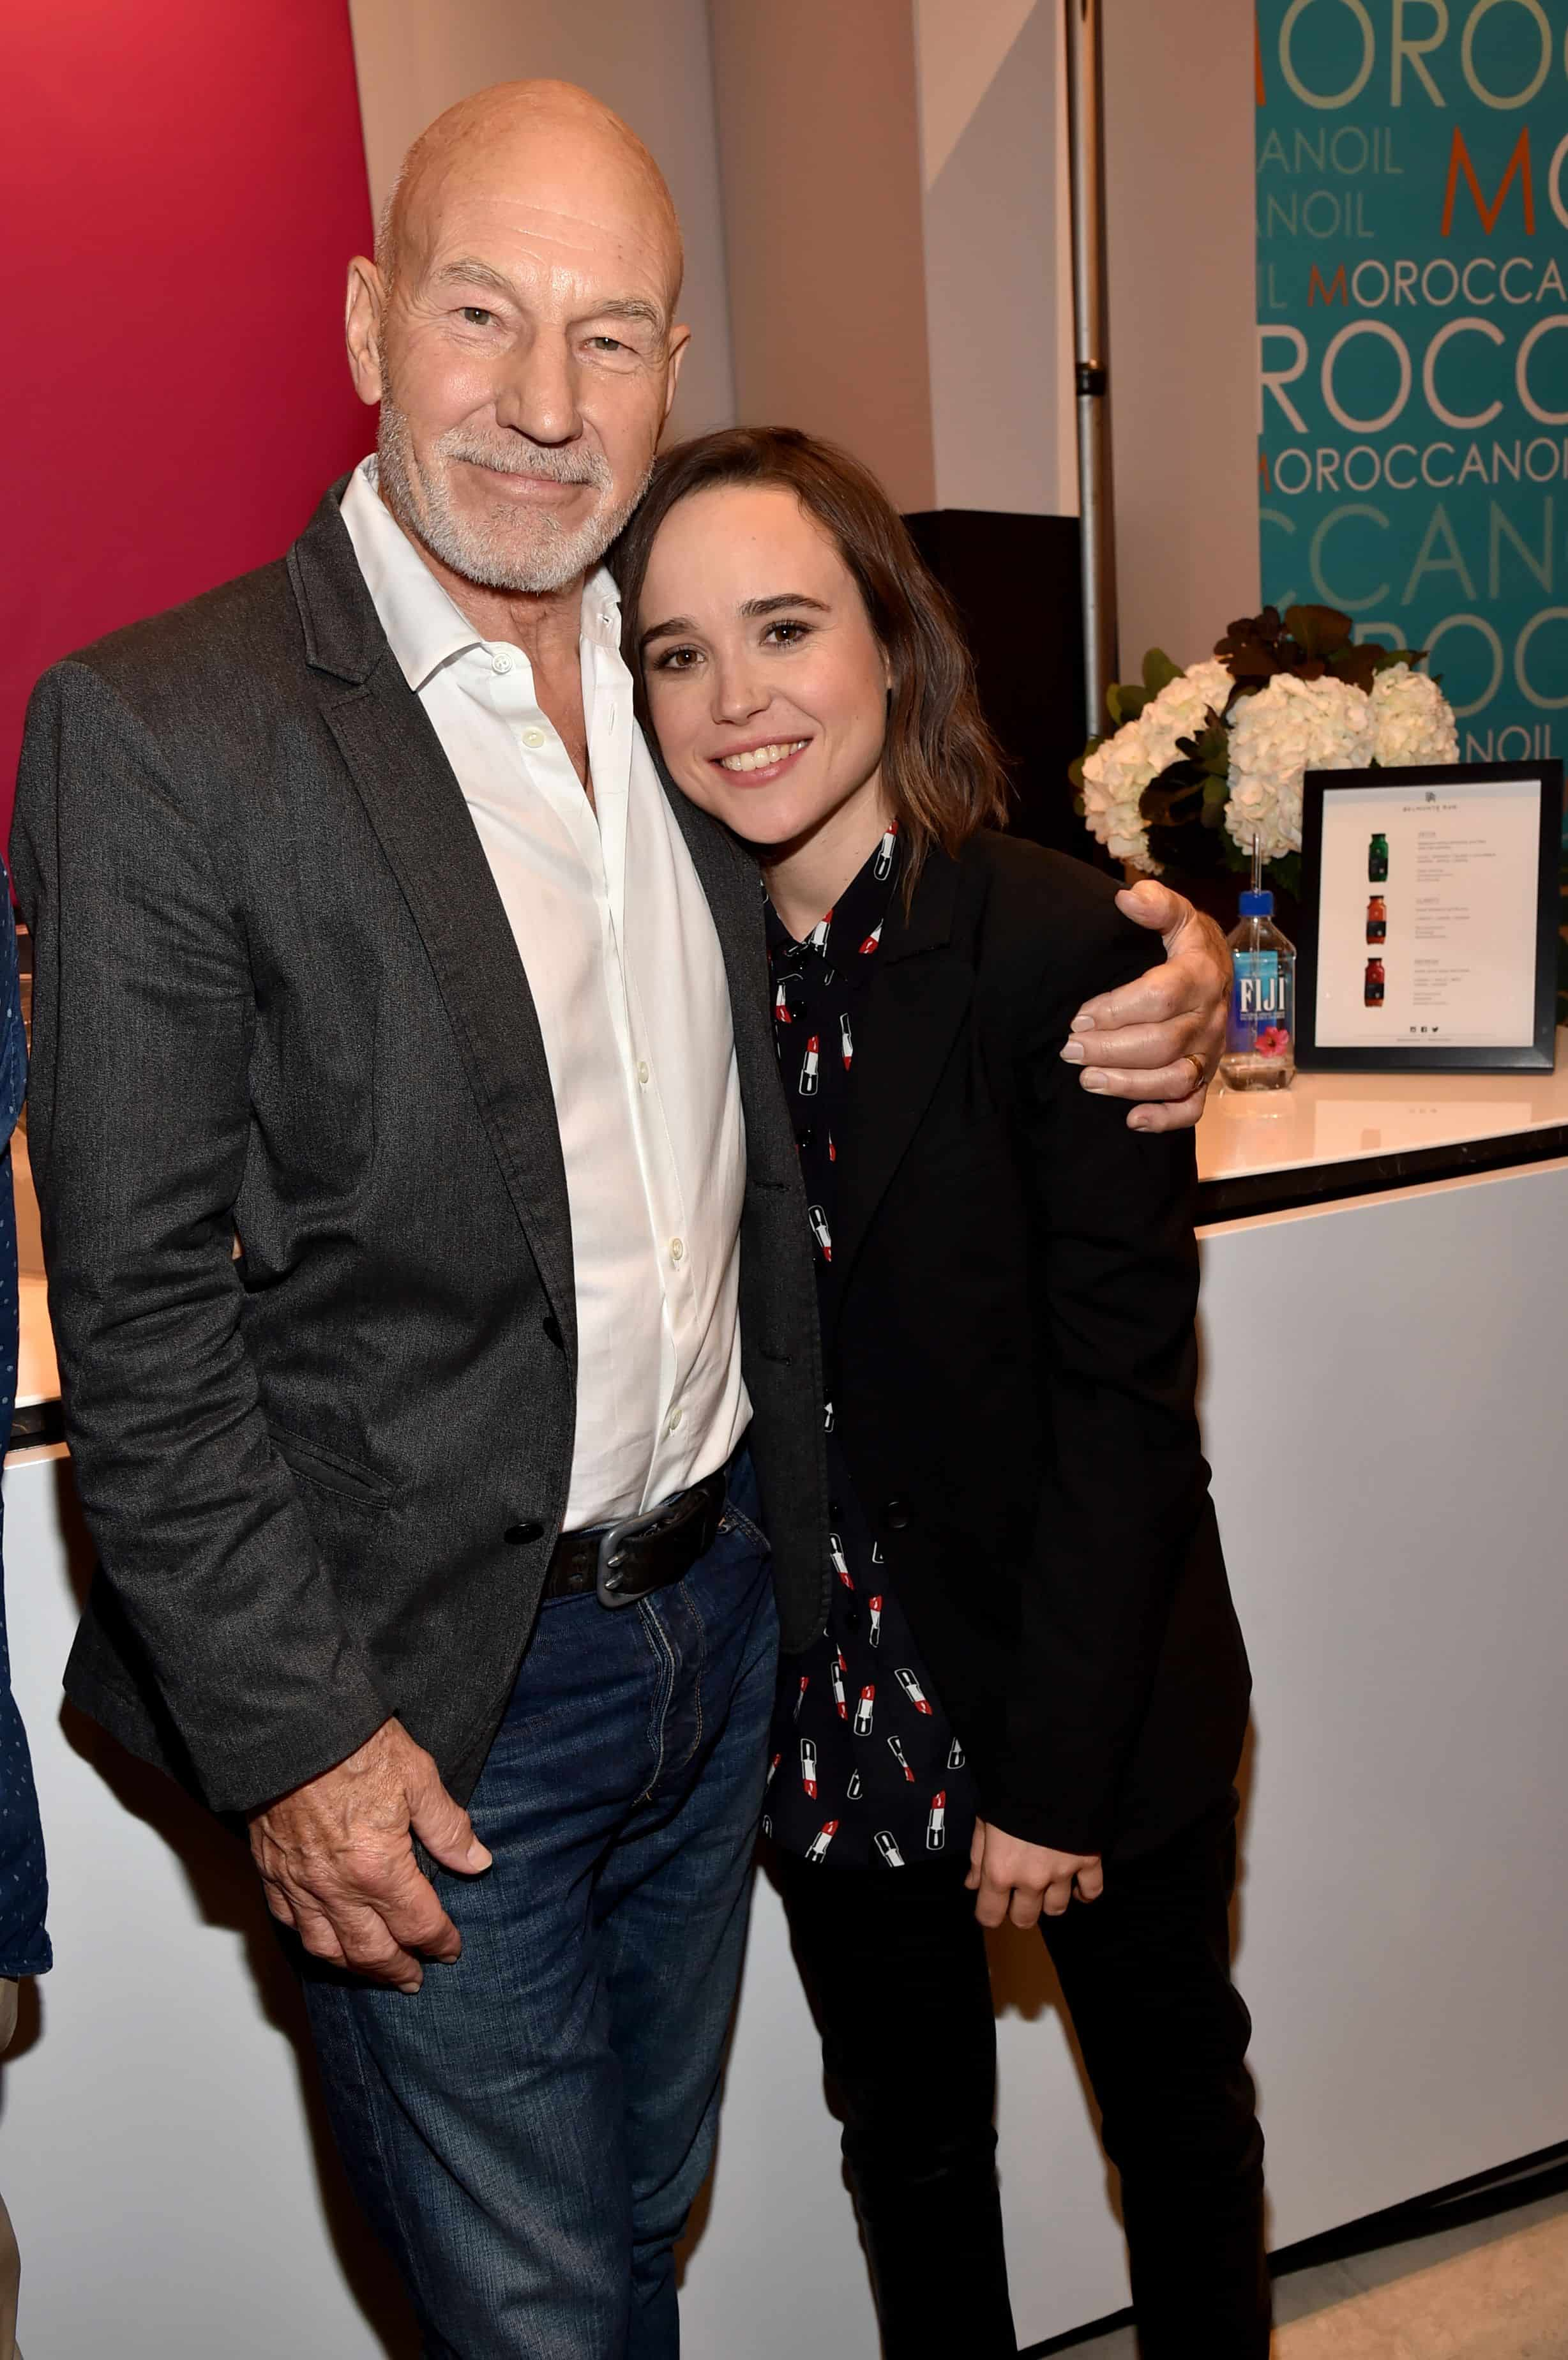 Mandatory Credit: Photo by Buckner/Variety/REX Shutterstock (5073671bc) Patrick Stewart and Ellen Page at the Variety Fandango Studio Powered by Samsung Galaxy at Holt Renfrew during the 2015 Toronto International Film Festival on 11 Sep 2015 in Toronto, Canada. Variety Fandango Studio Powered by Samsung Galaxy, Toronto International Film Festival, Canada - 11 Sep 2015